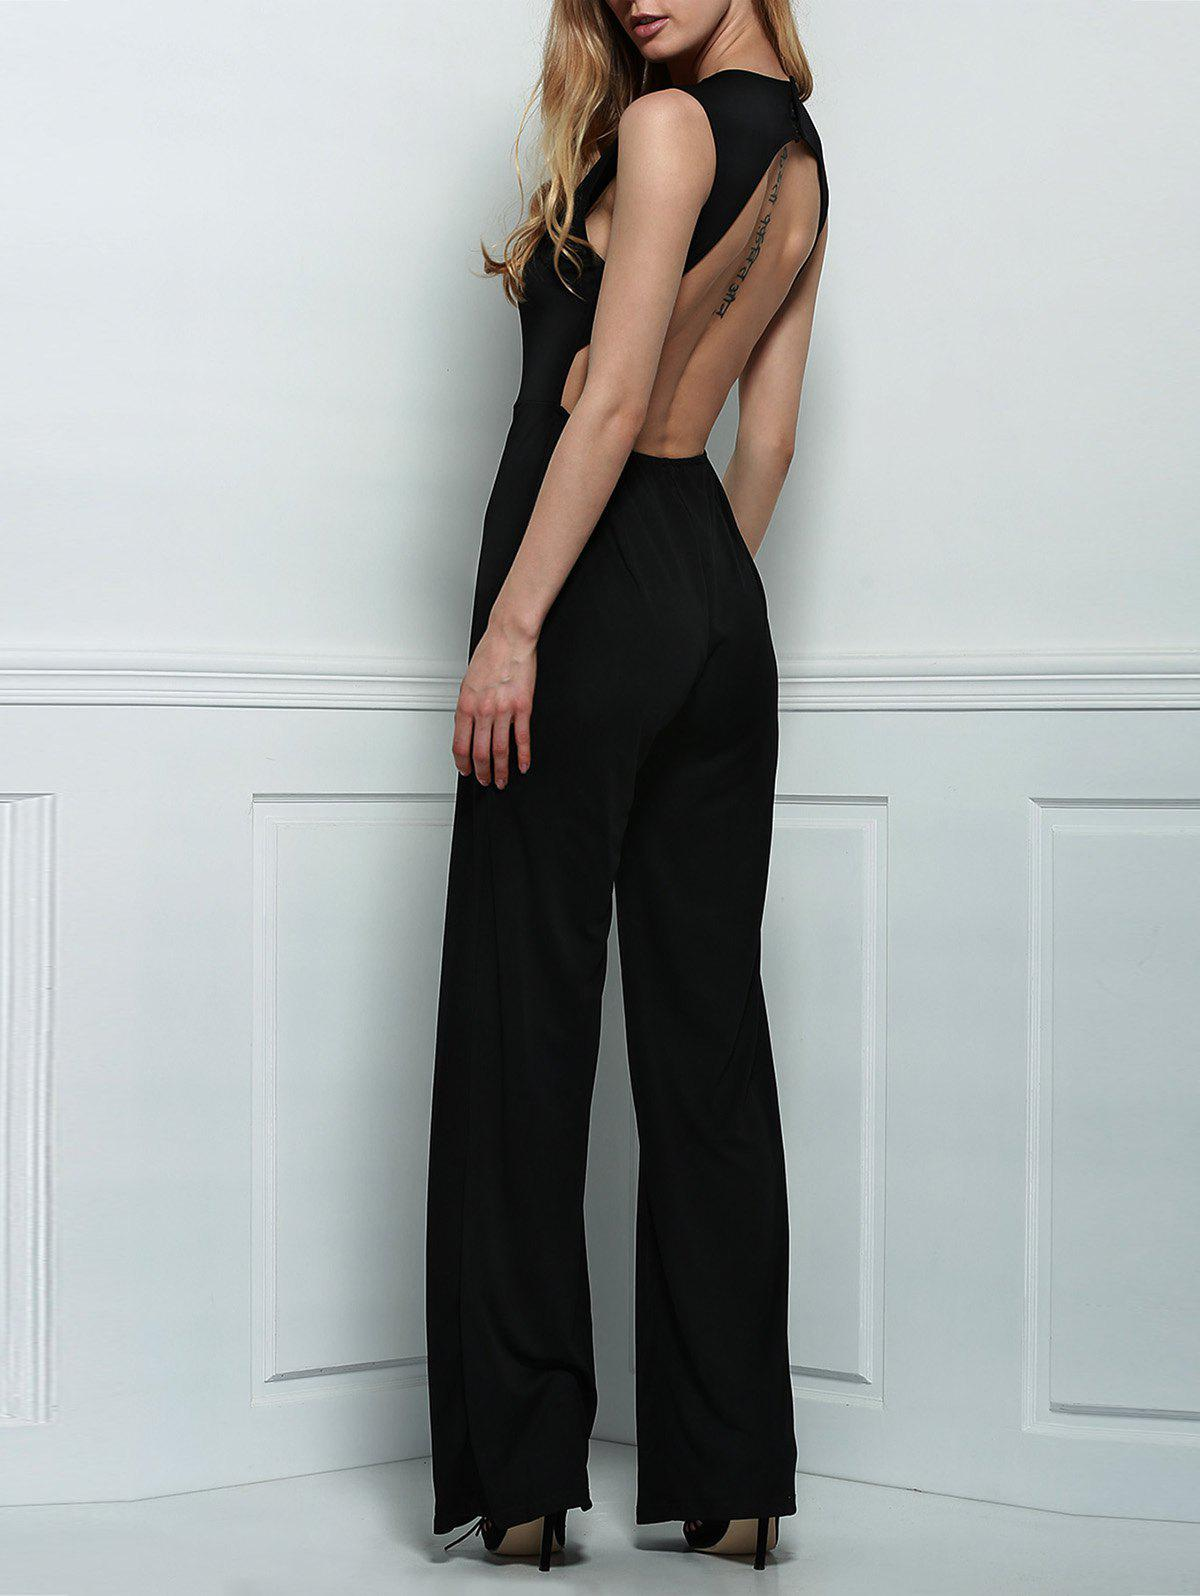 Sexy Plunging Neck Sleeveless Backless Women's Black Jumpsuit - BLACK S